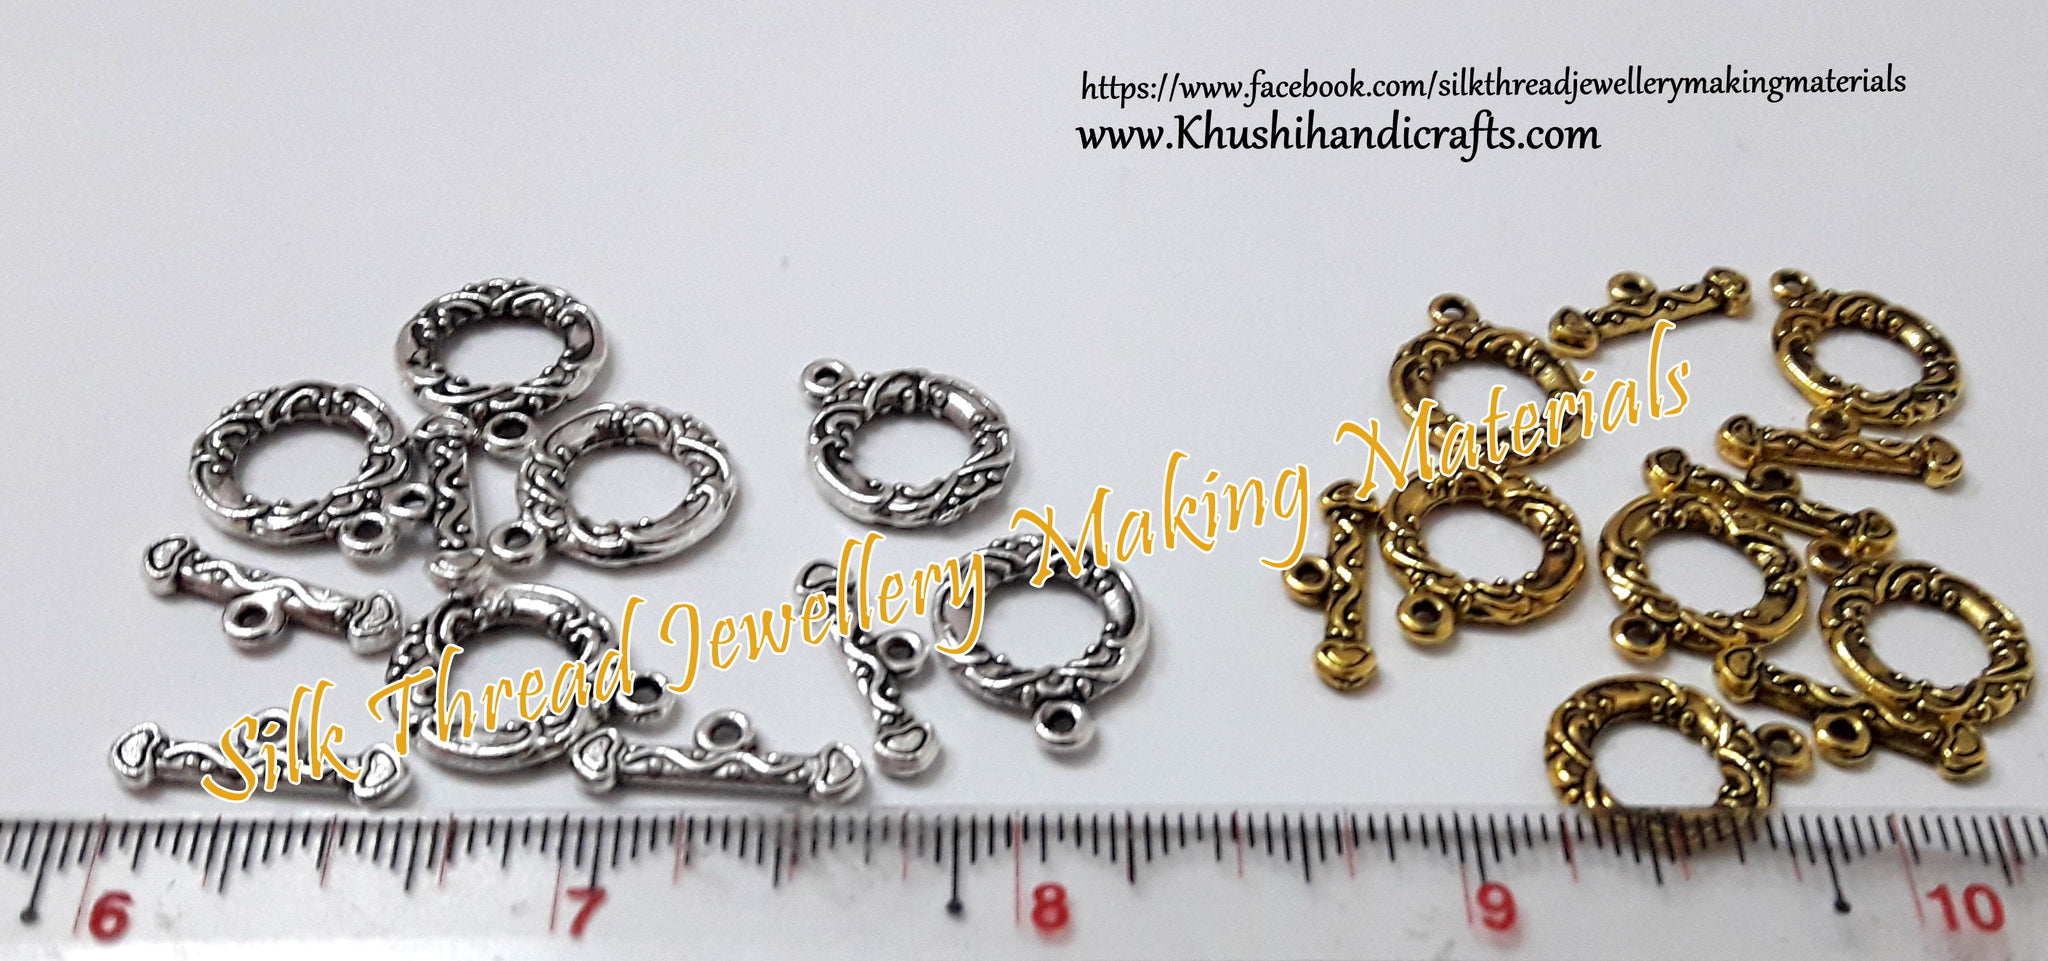 Circular Toggle Clasps in Gold /Silver -T8 - Khushi Handmade Jewellery